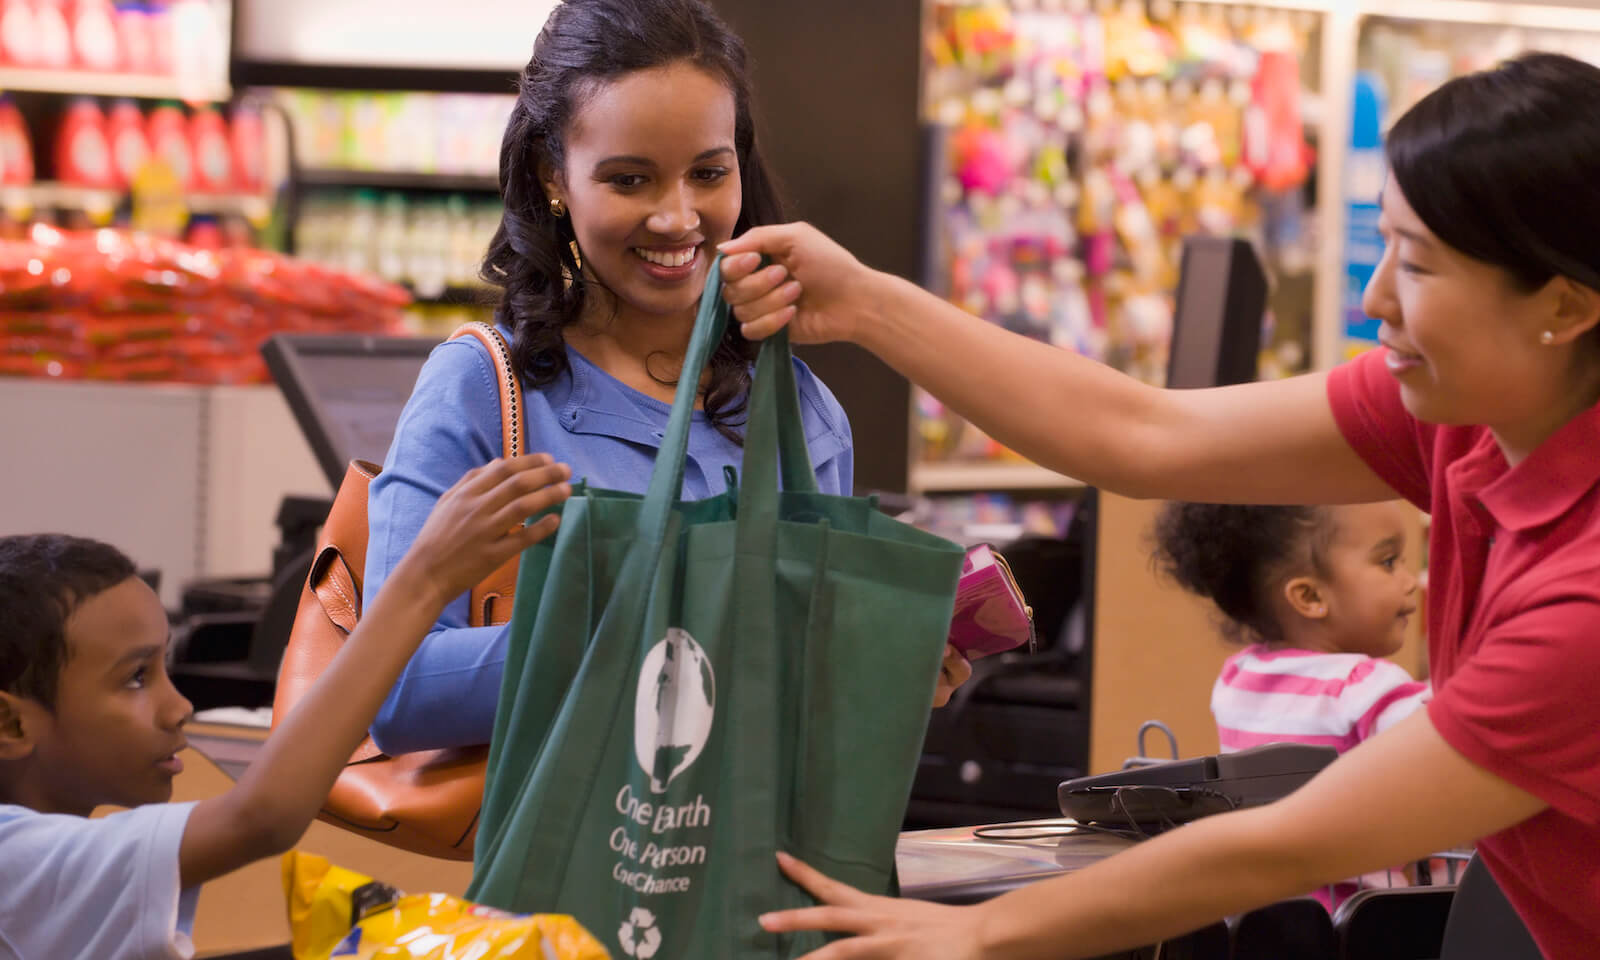 Mother and son using reusable bag in grocery store